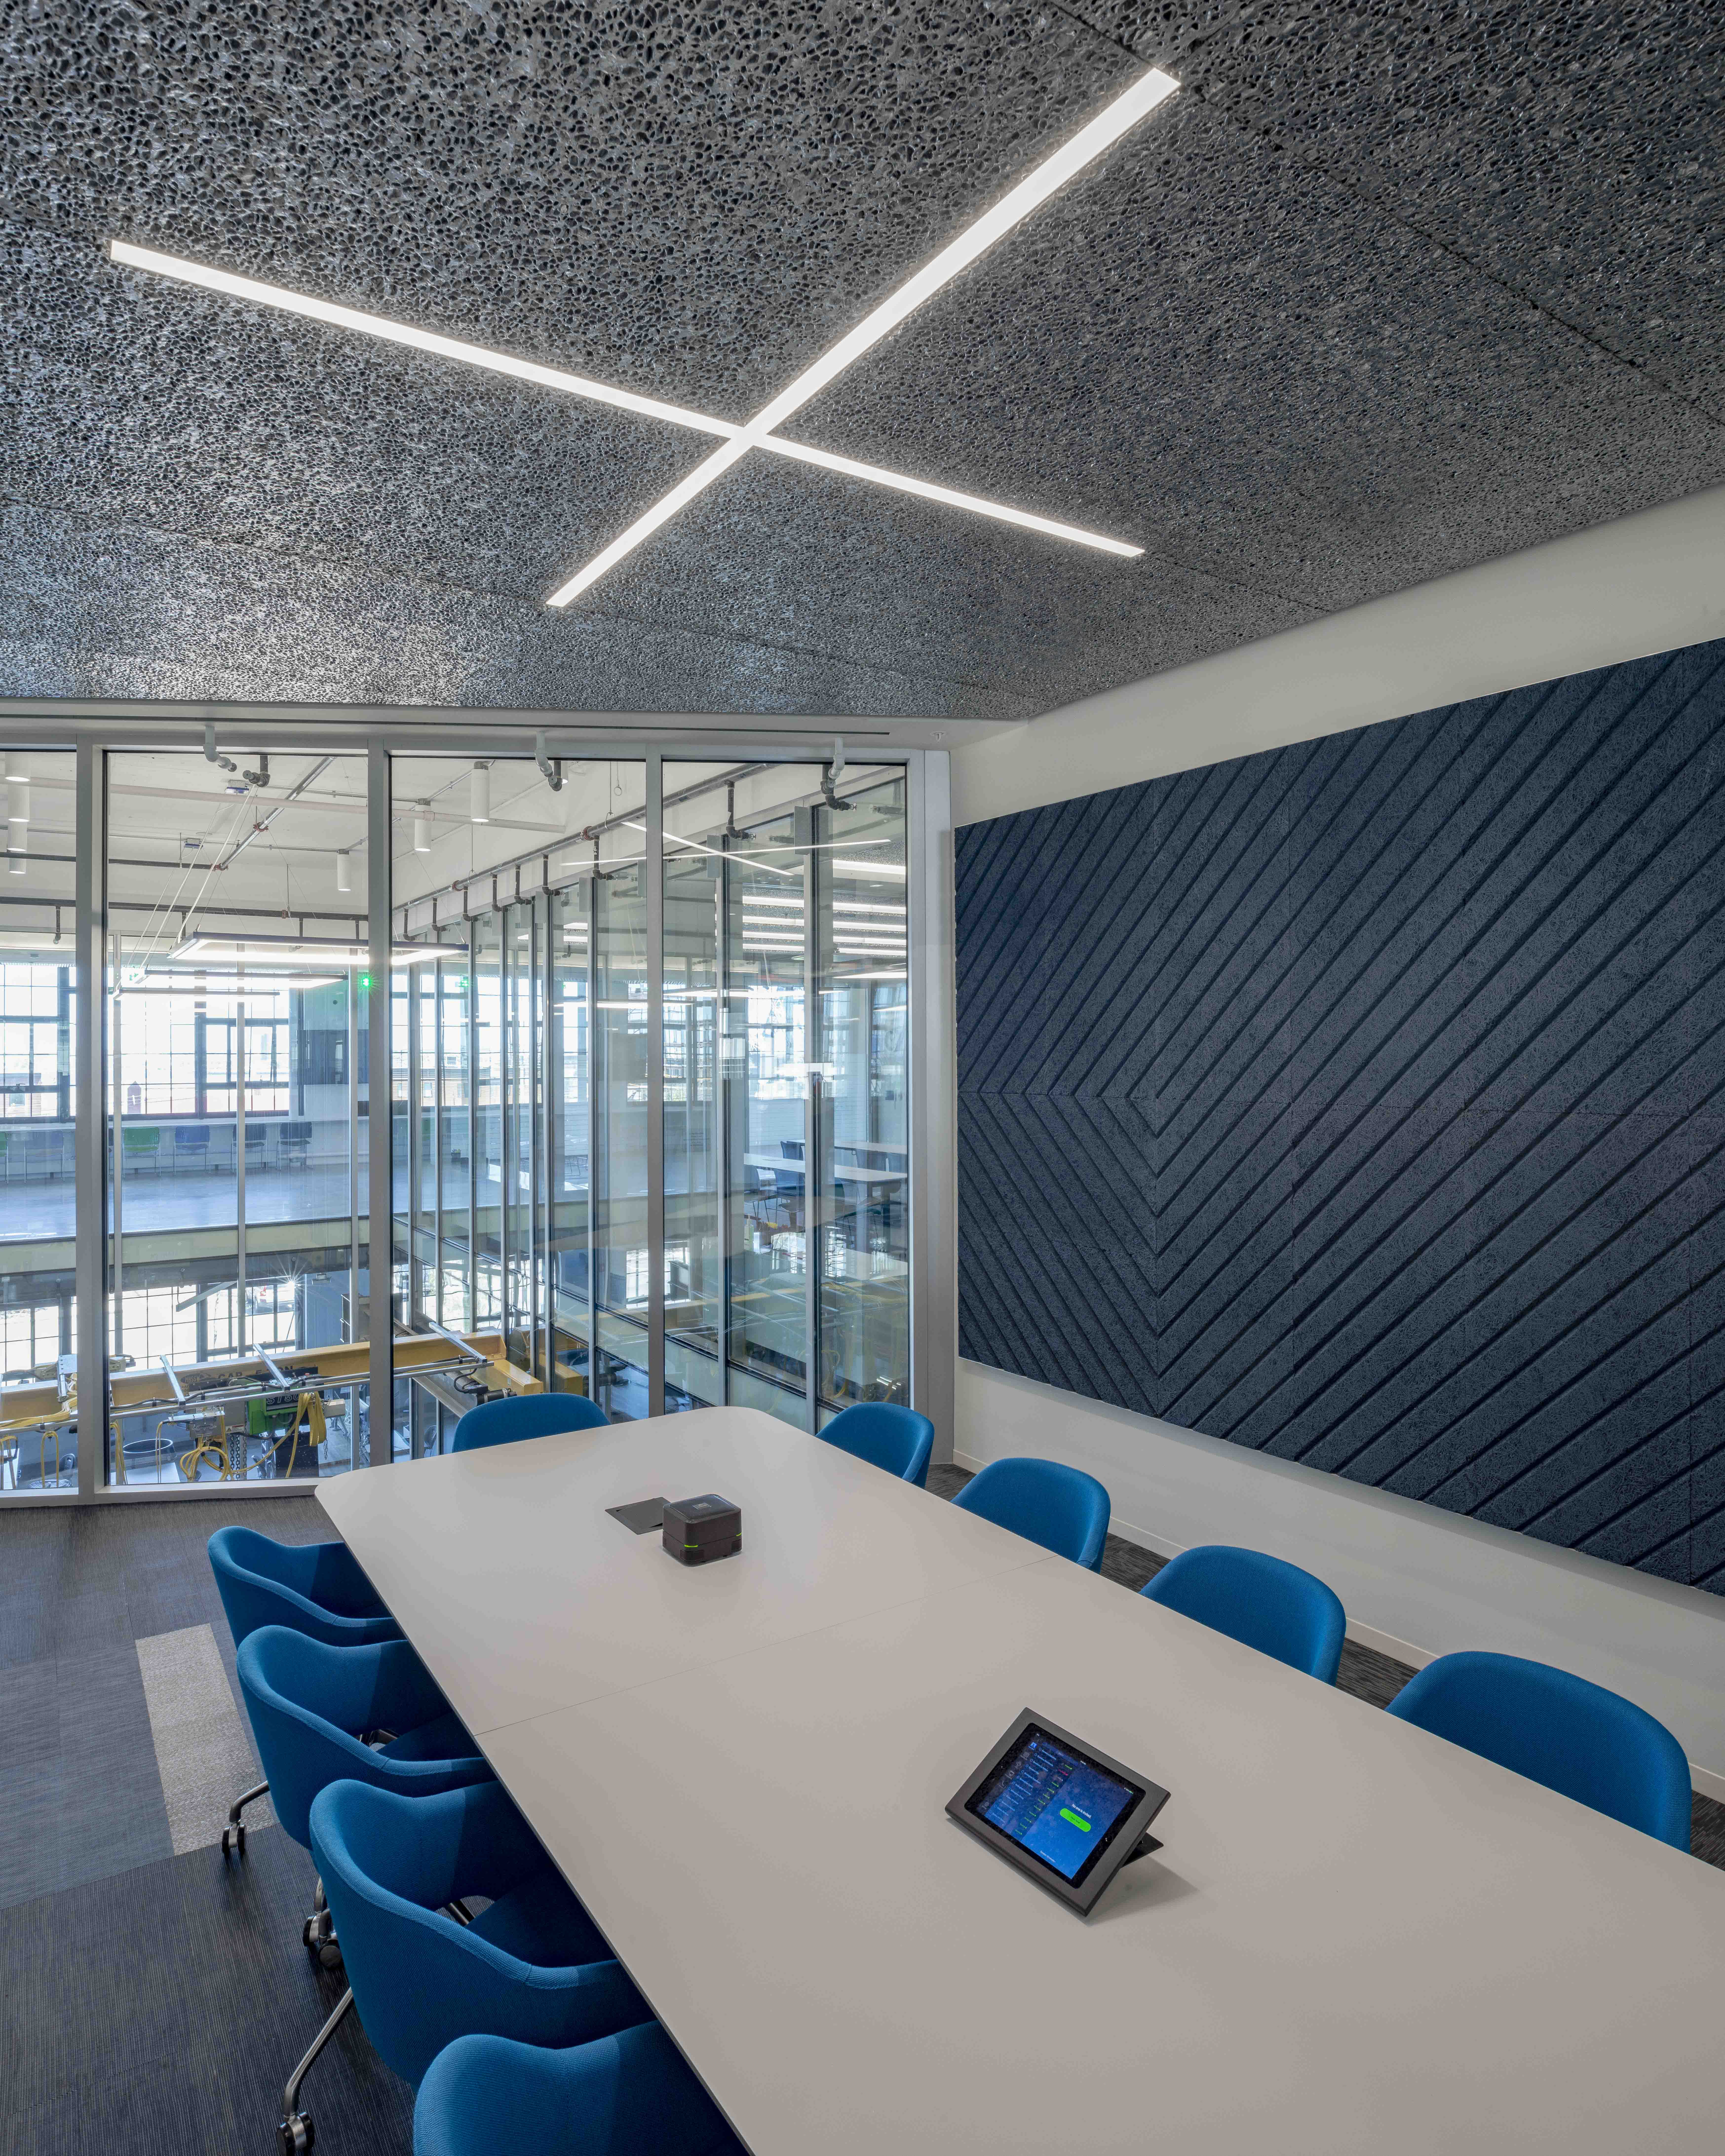 Join Utile for a WiD tour of Autodesk Boston on June 13th!